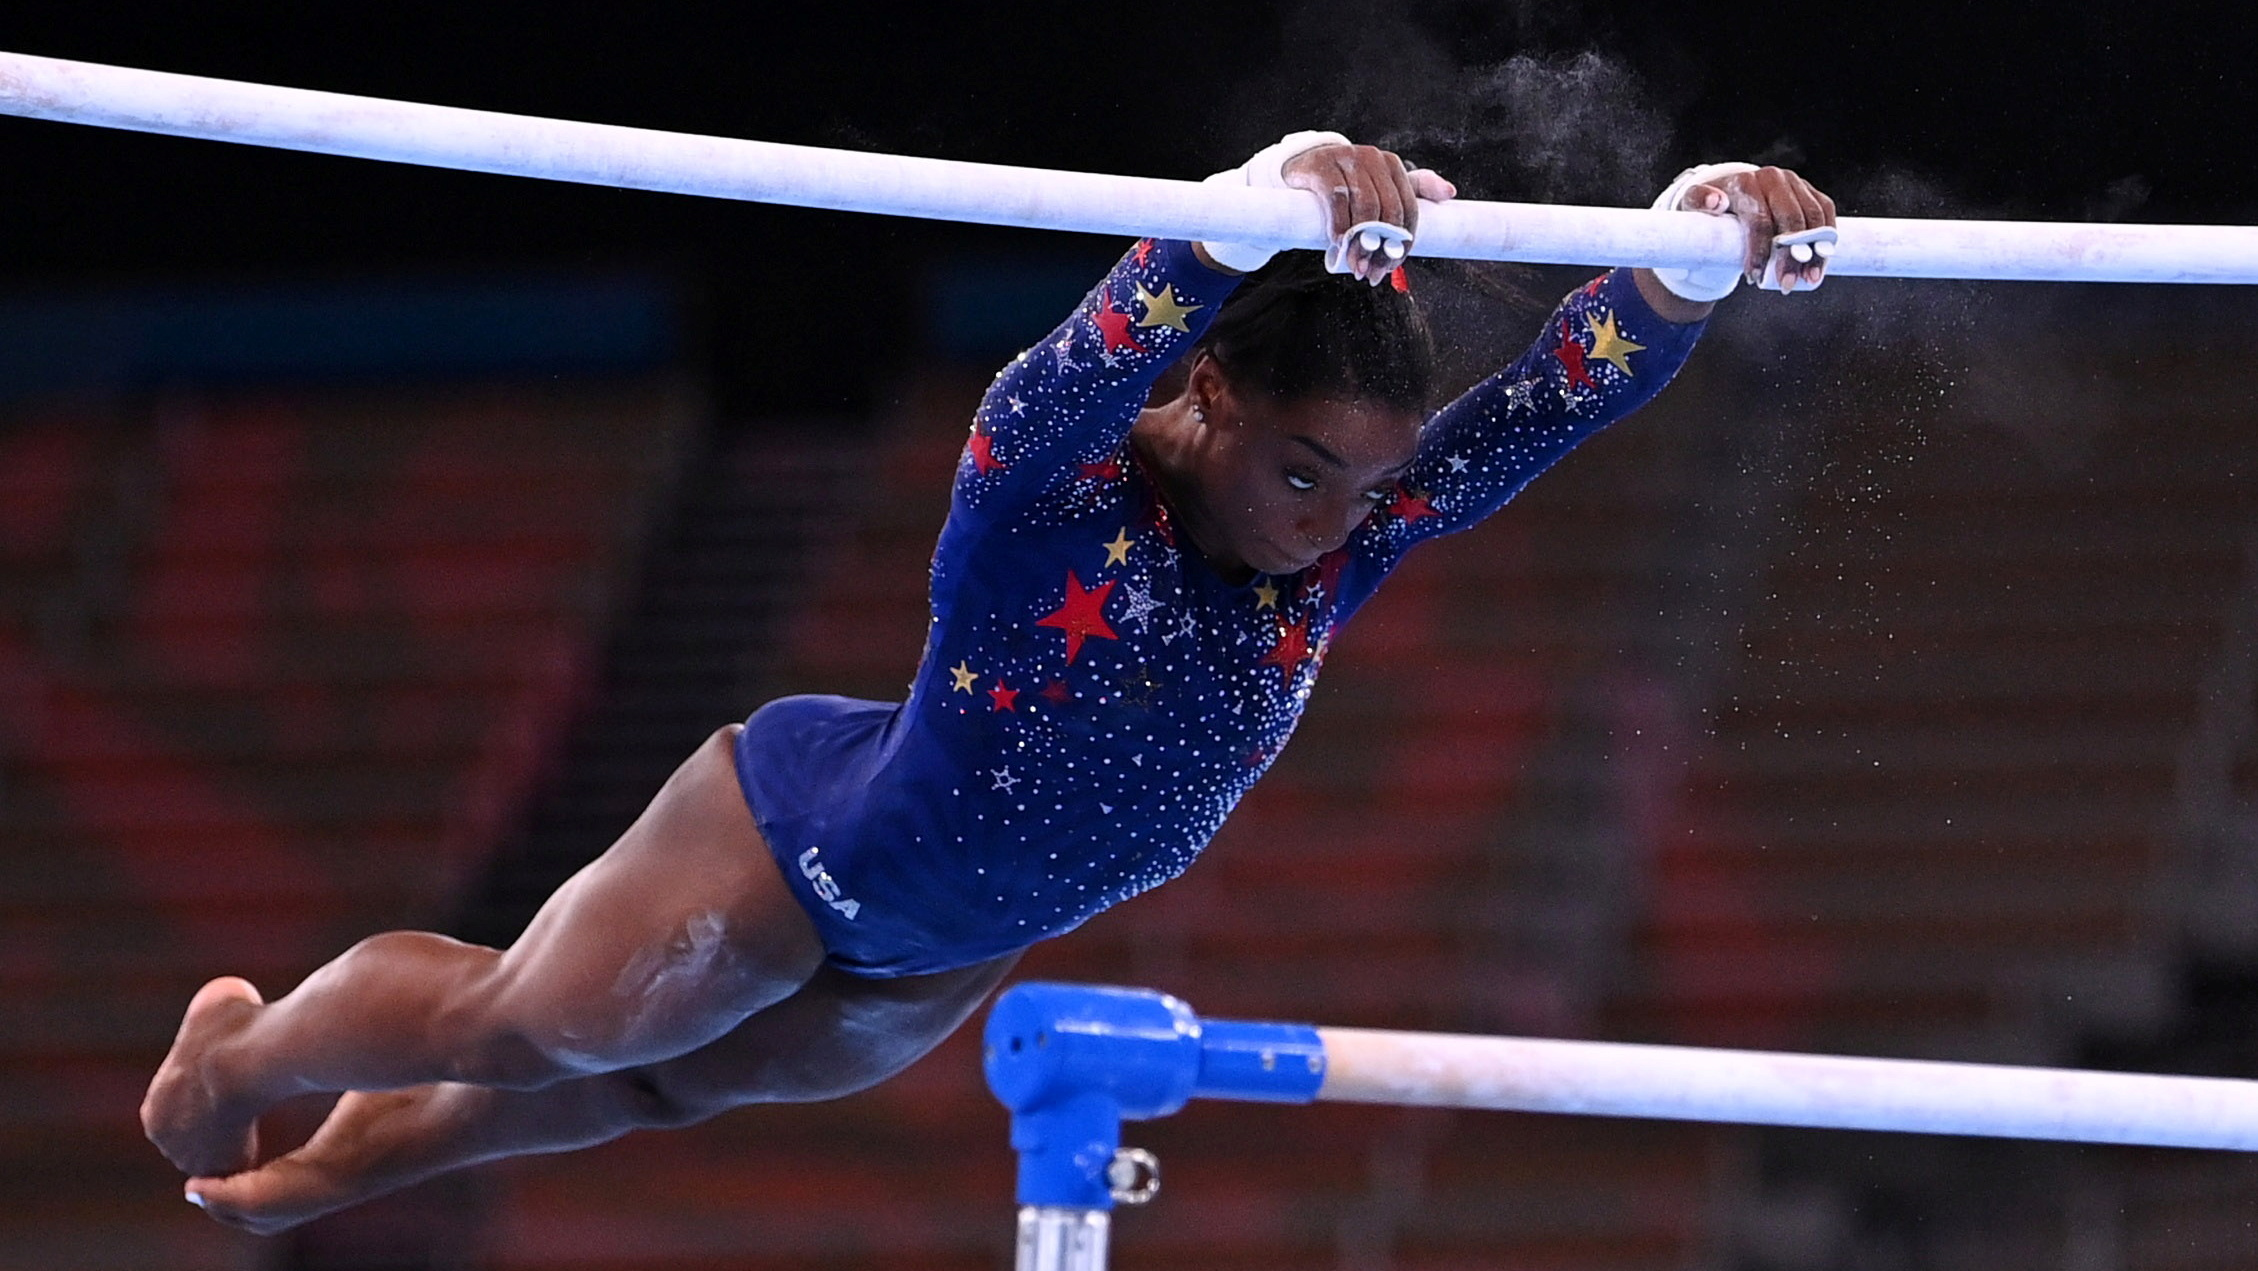 Tokyo 2020 Olympics - Gymnastics - Artistic - Women's Uneven Bars - Qualification - Ariake Gymnastics Centre, Tokyo, Japan - July 25, 2021. Simone Biles of the United States in action on the uneven bars. REUTERS/Dylan Martinez